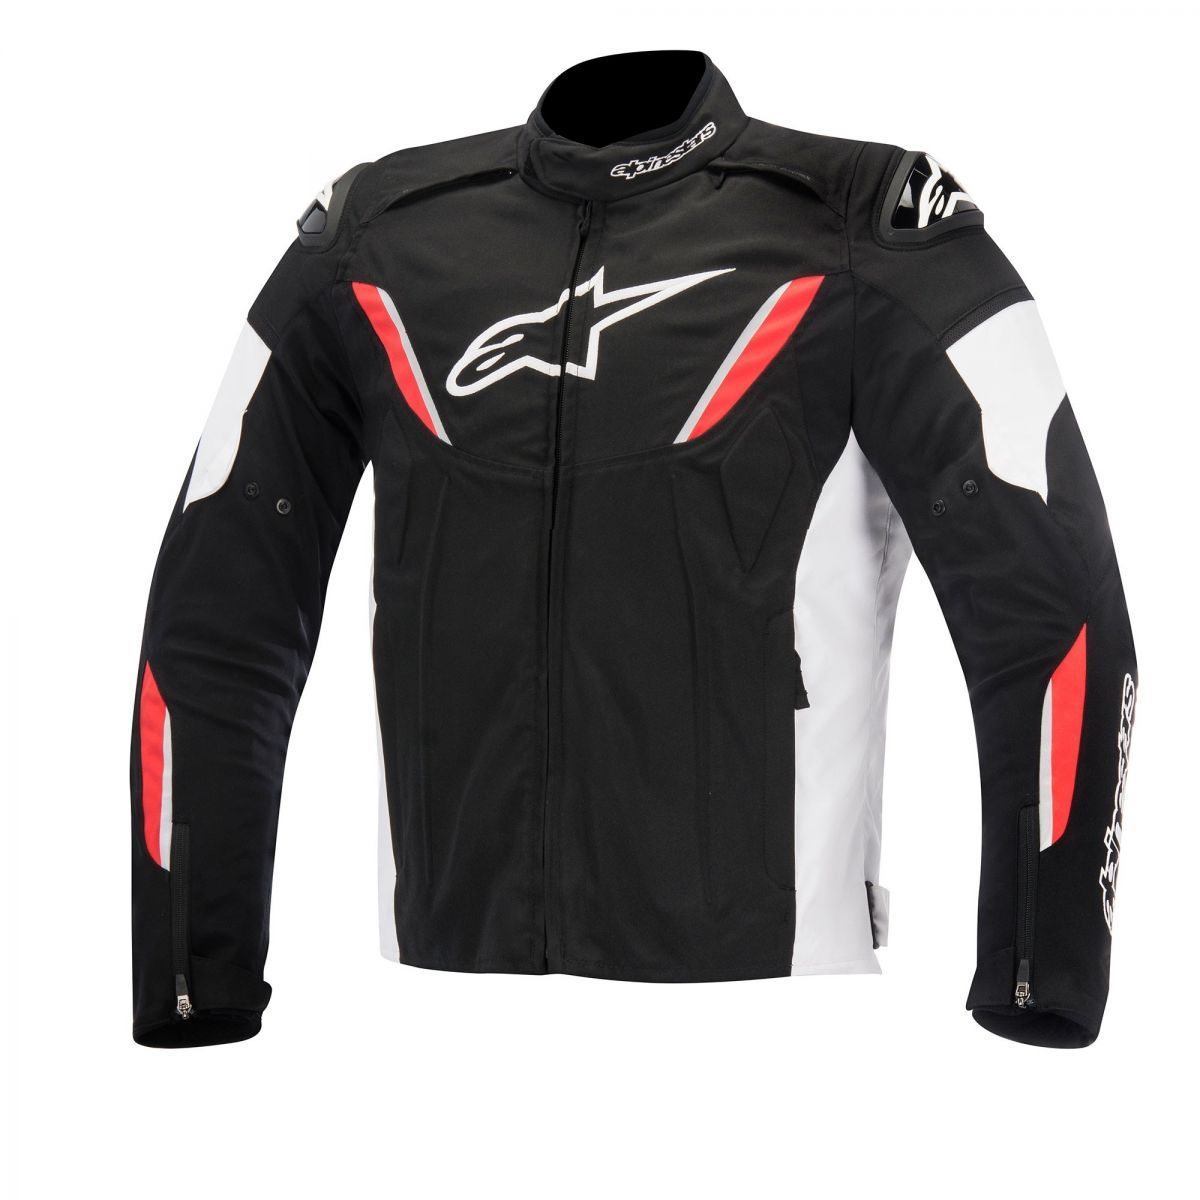 Jaqueta Alpinestars T GP R WP (Tricolor Red/ Impermeável) NOVO  - Super Bike - Loja Oficial Alpinestars